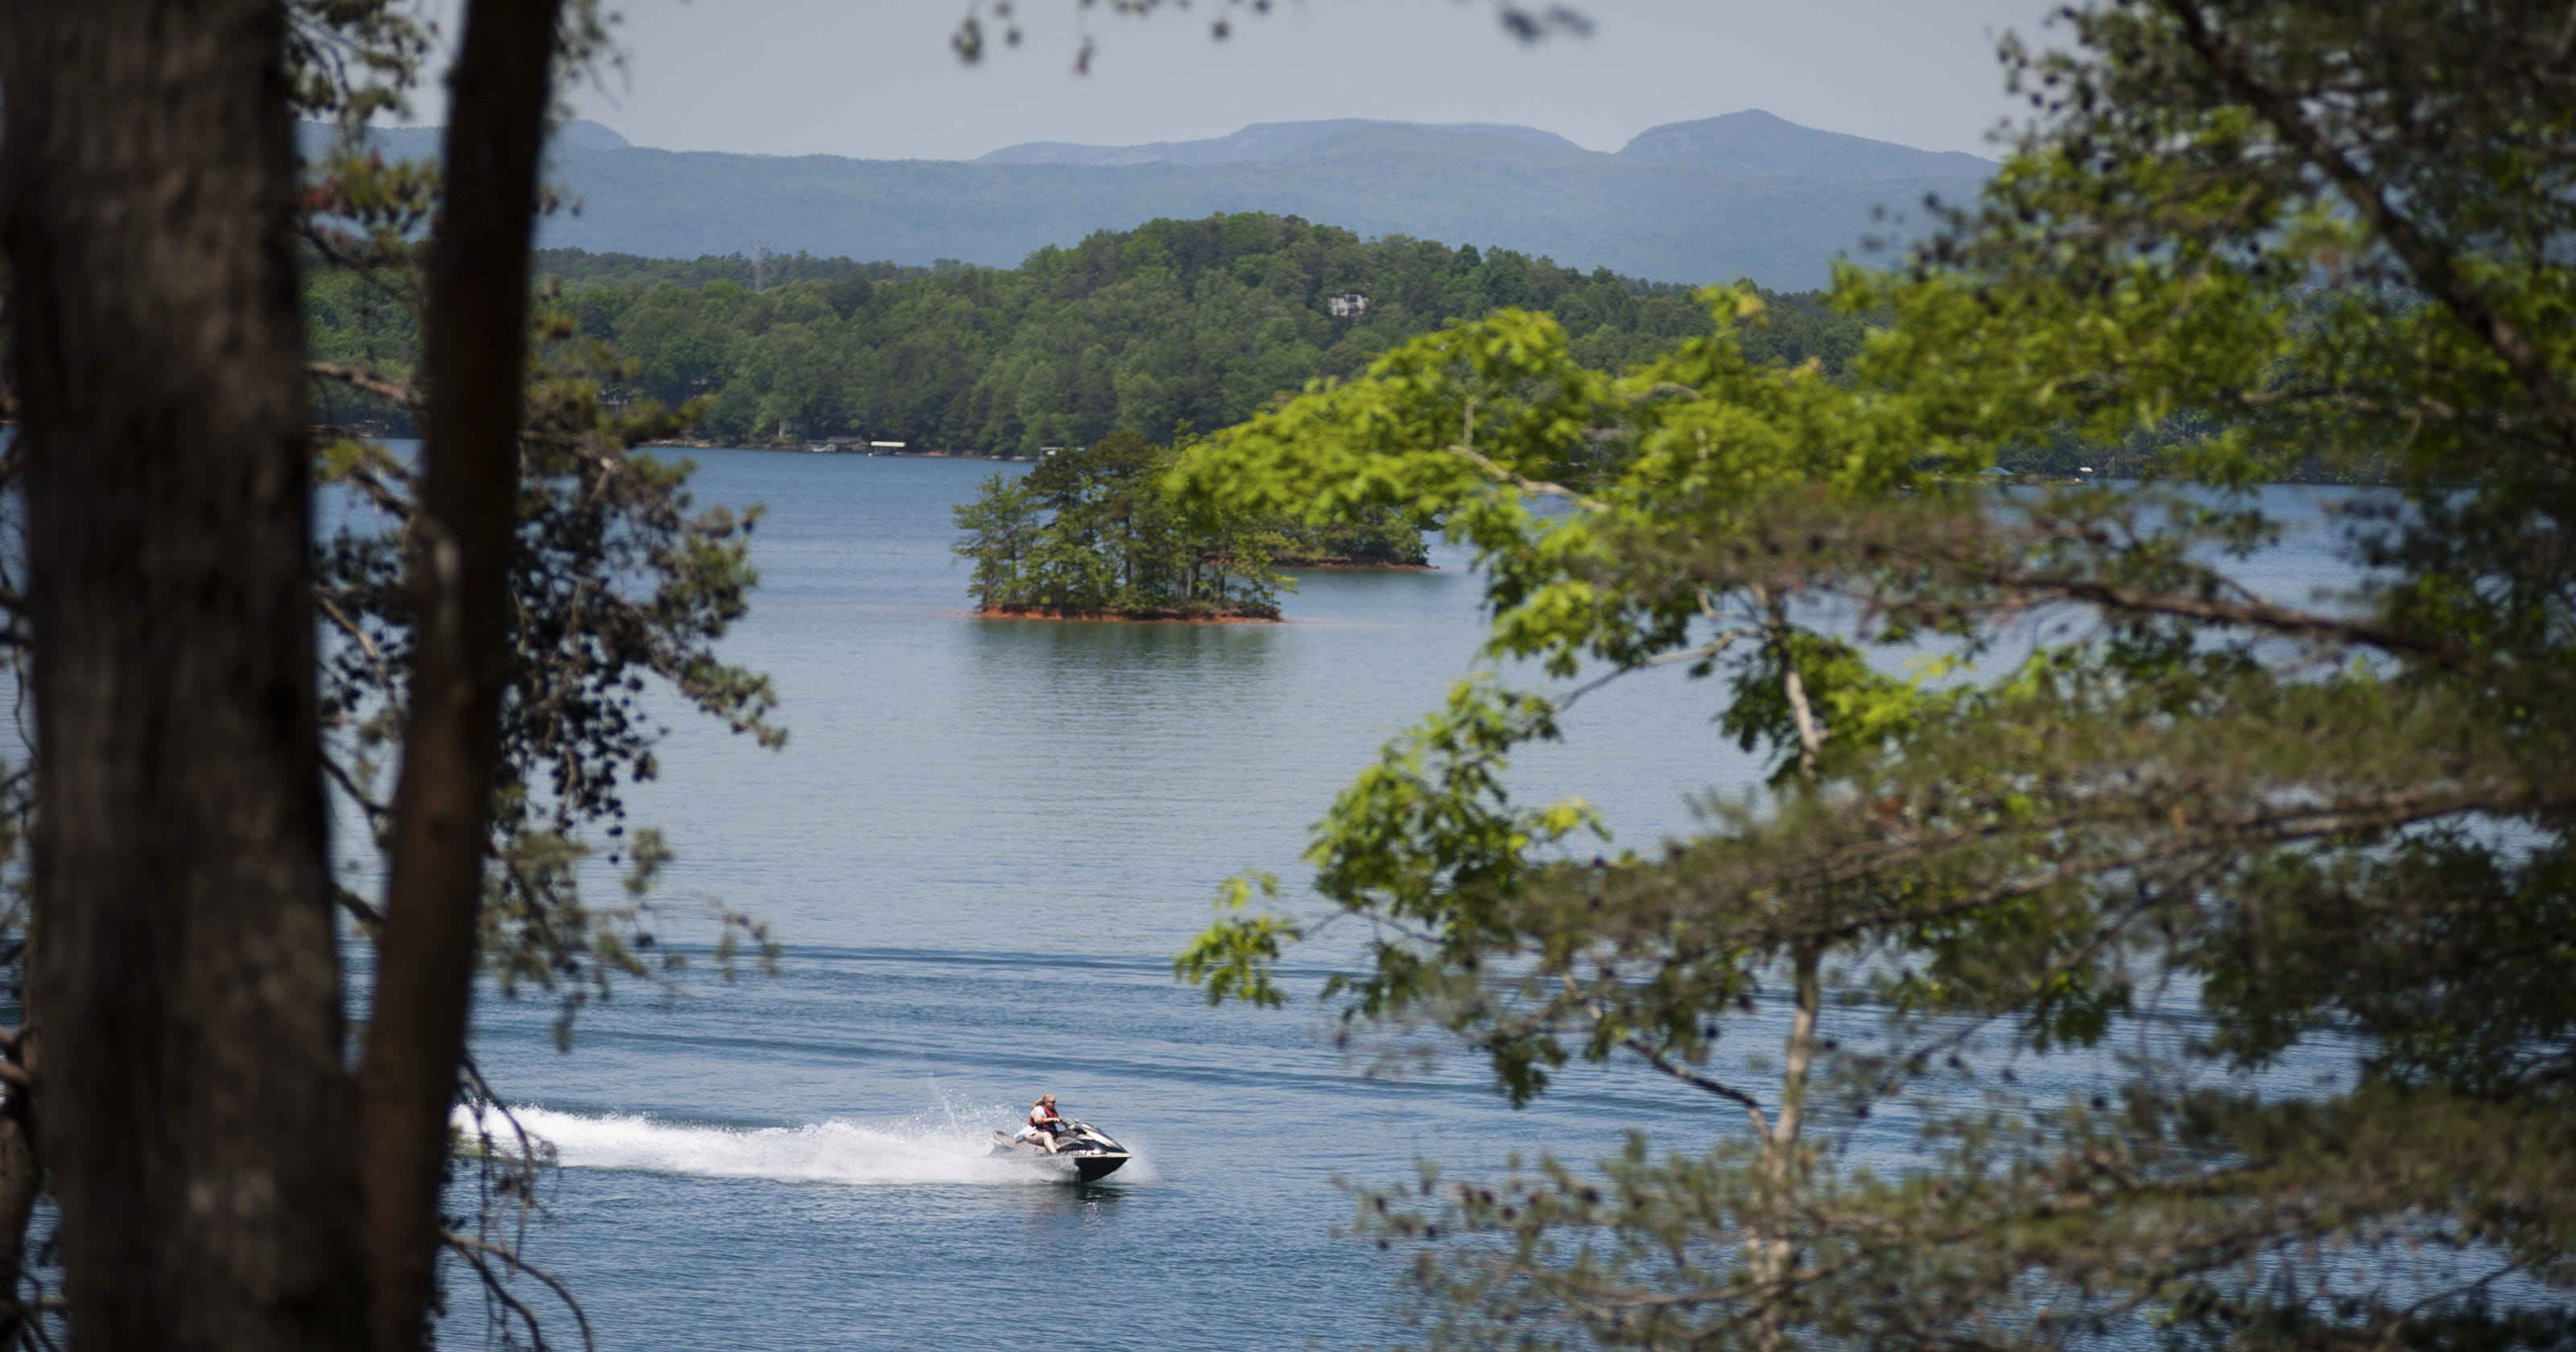 Dukes Relicensing Deal Will Keep Keowee Lake Levels Higher